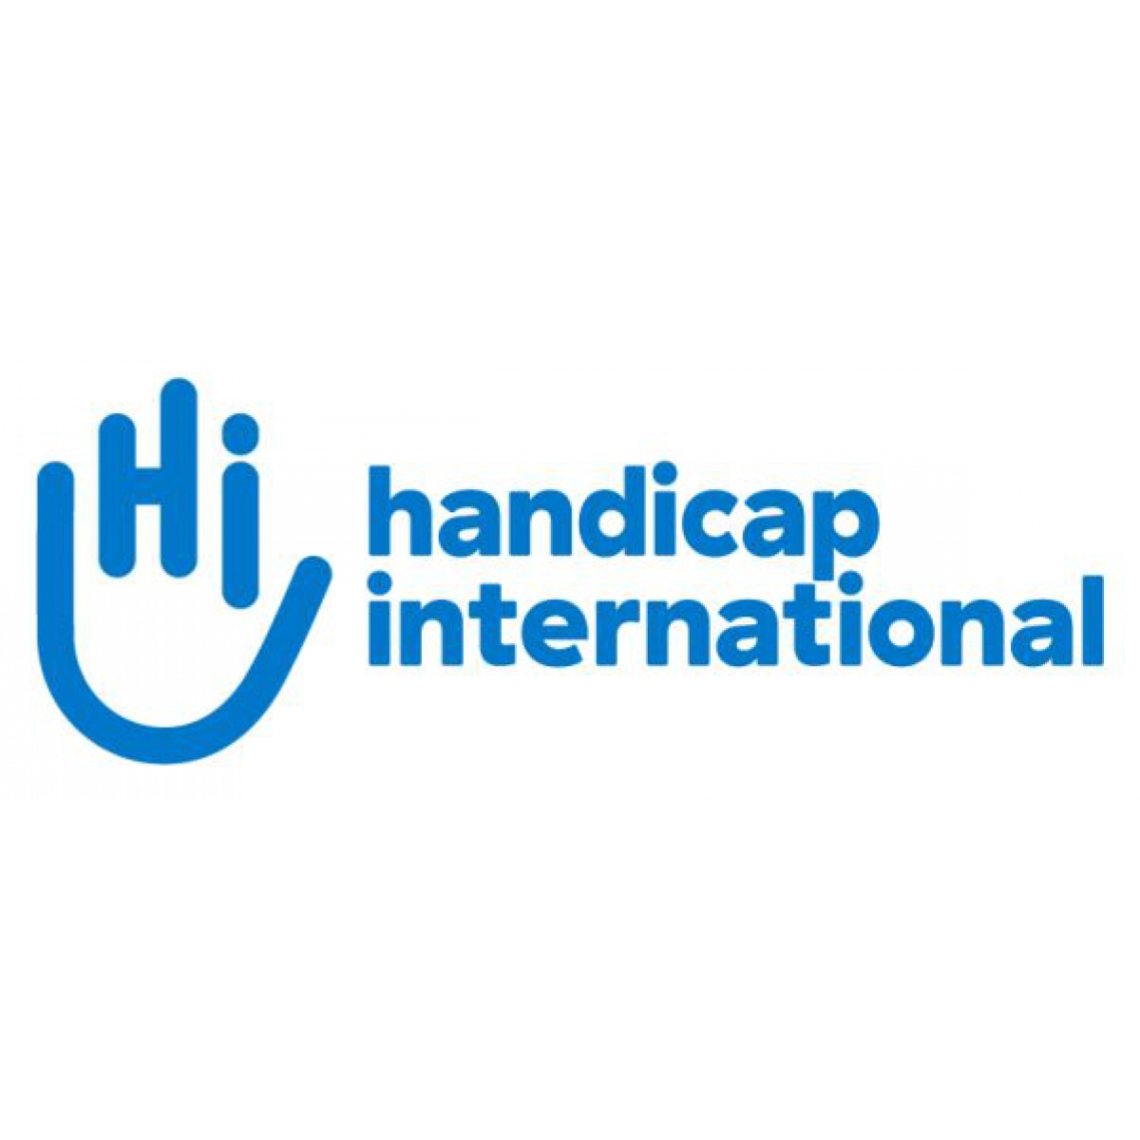 Handicap International Logo 2018